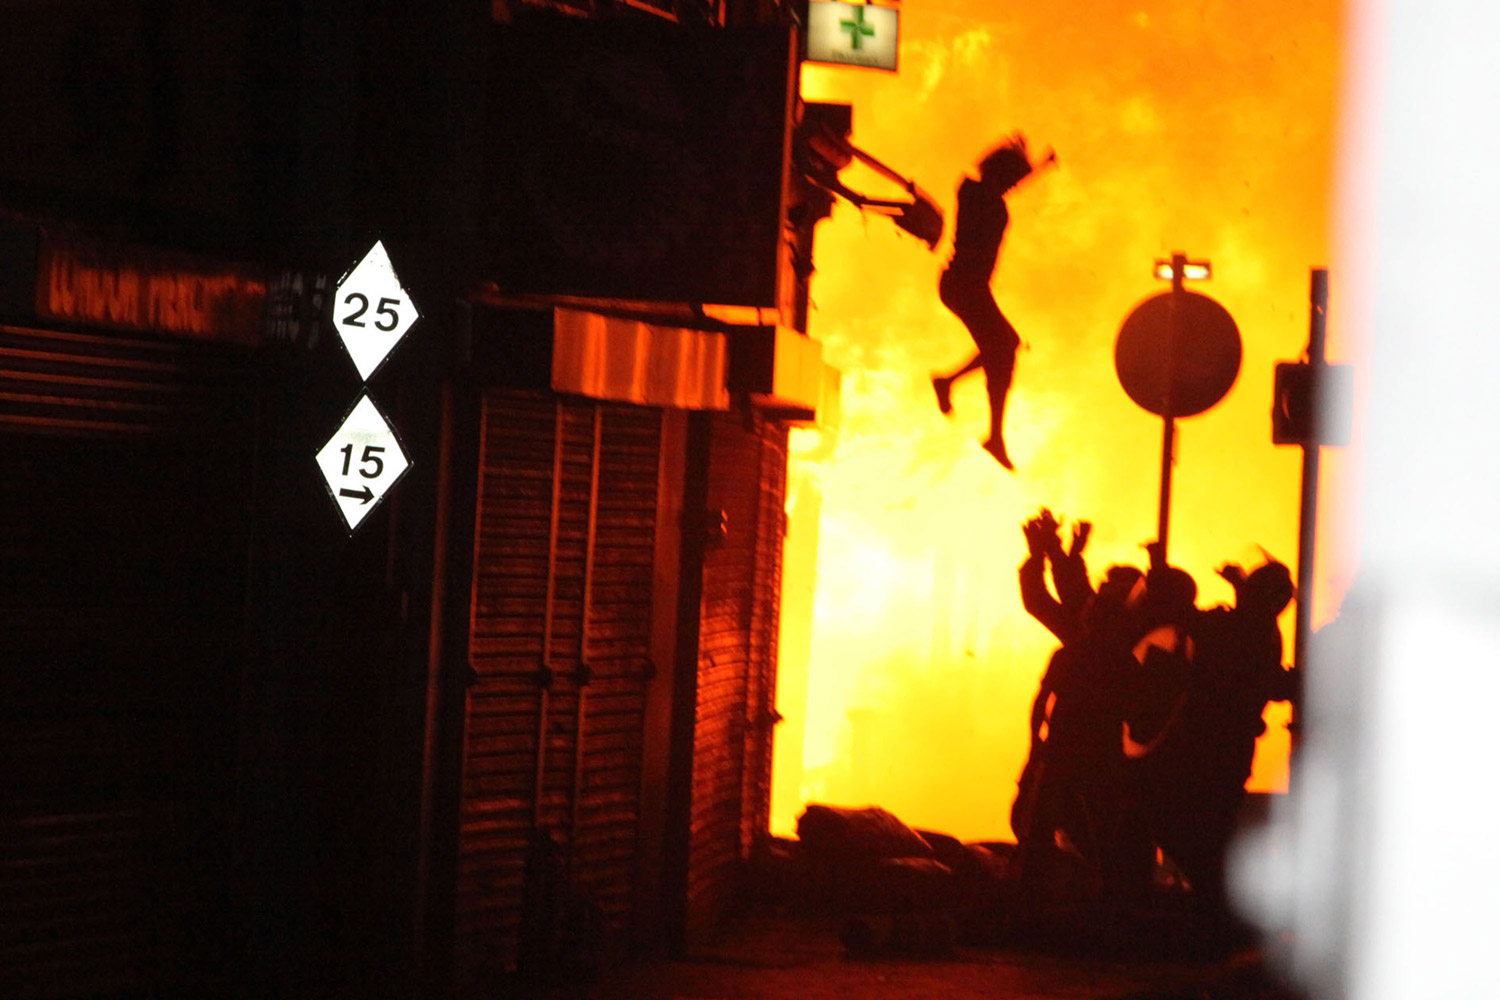 A woman is seen jumping from a burning building on Surrey Street after rioting in Croydon, England, on Aug. 8, 2011.